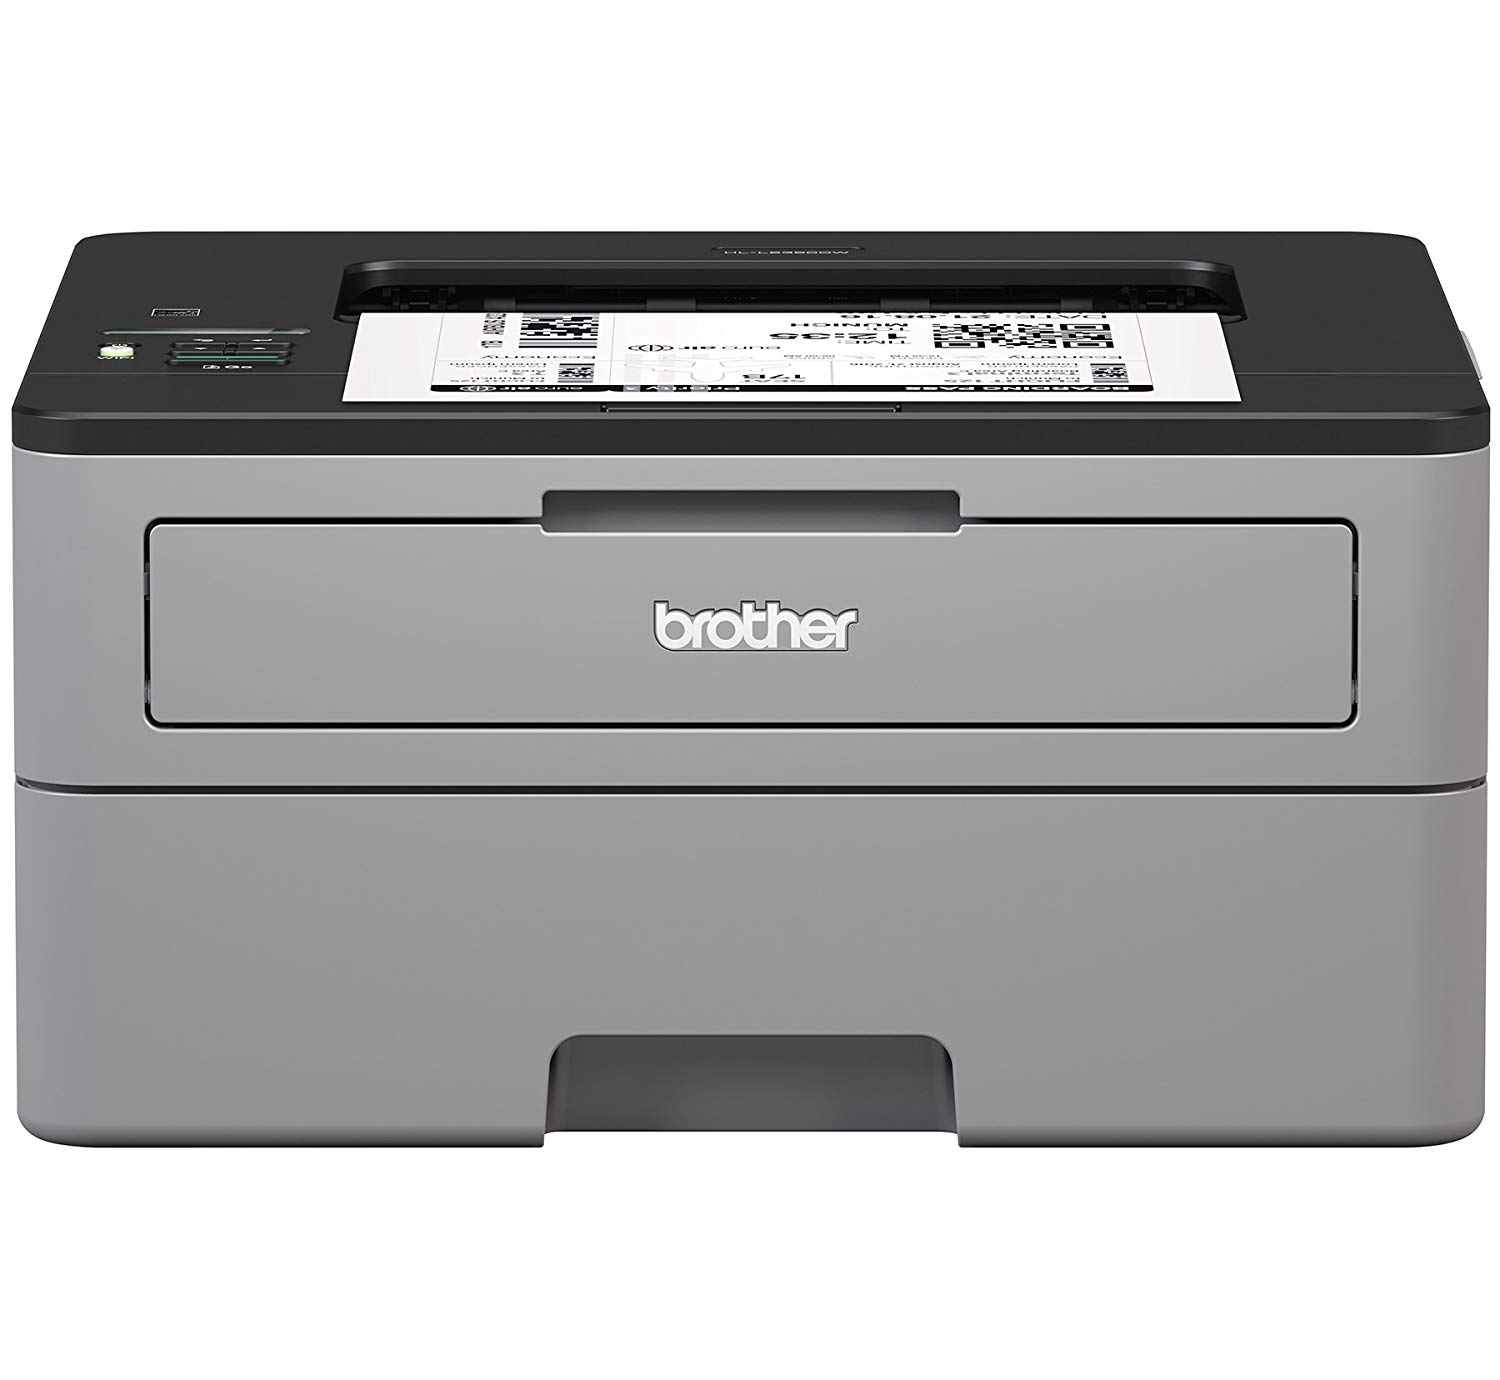 Brother HL-L2350DW Printer. Black Only Laser Ink Tray Printer  (PRINTS Black Ink only, NO scanner or fax) . Super Basic, Super Reliable. Anything within the 2300 series is similar, and they cost under $80 new.